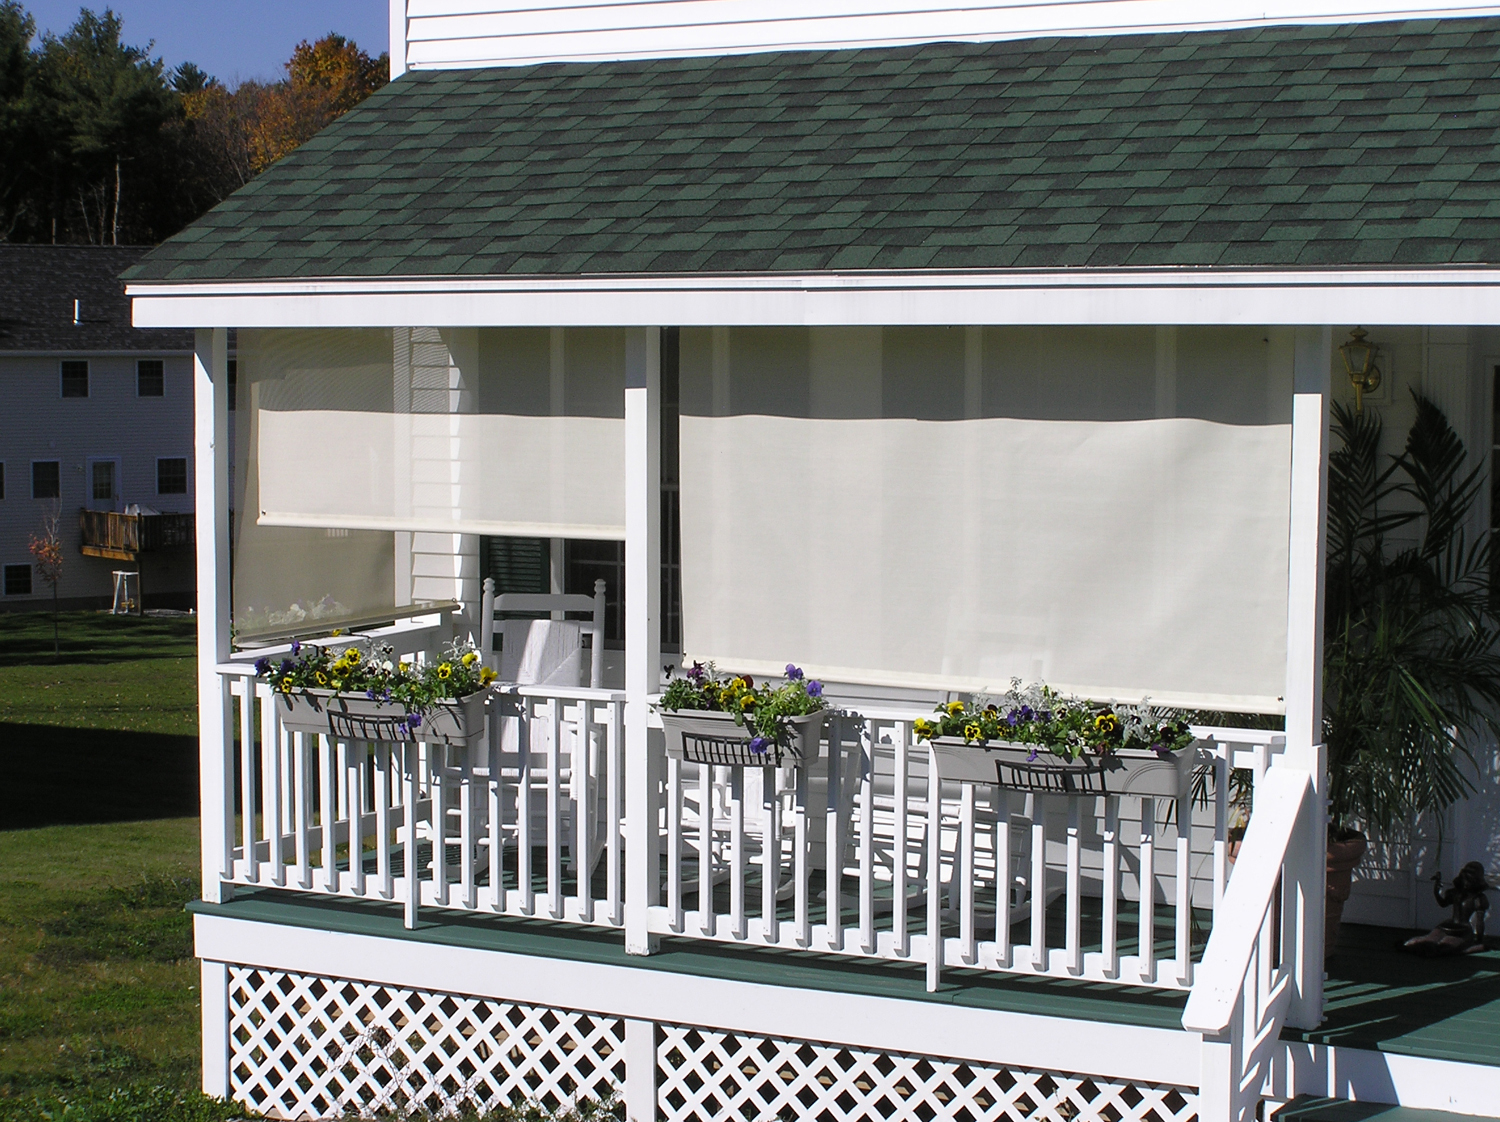 Awning Fabric & Shade Colors